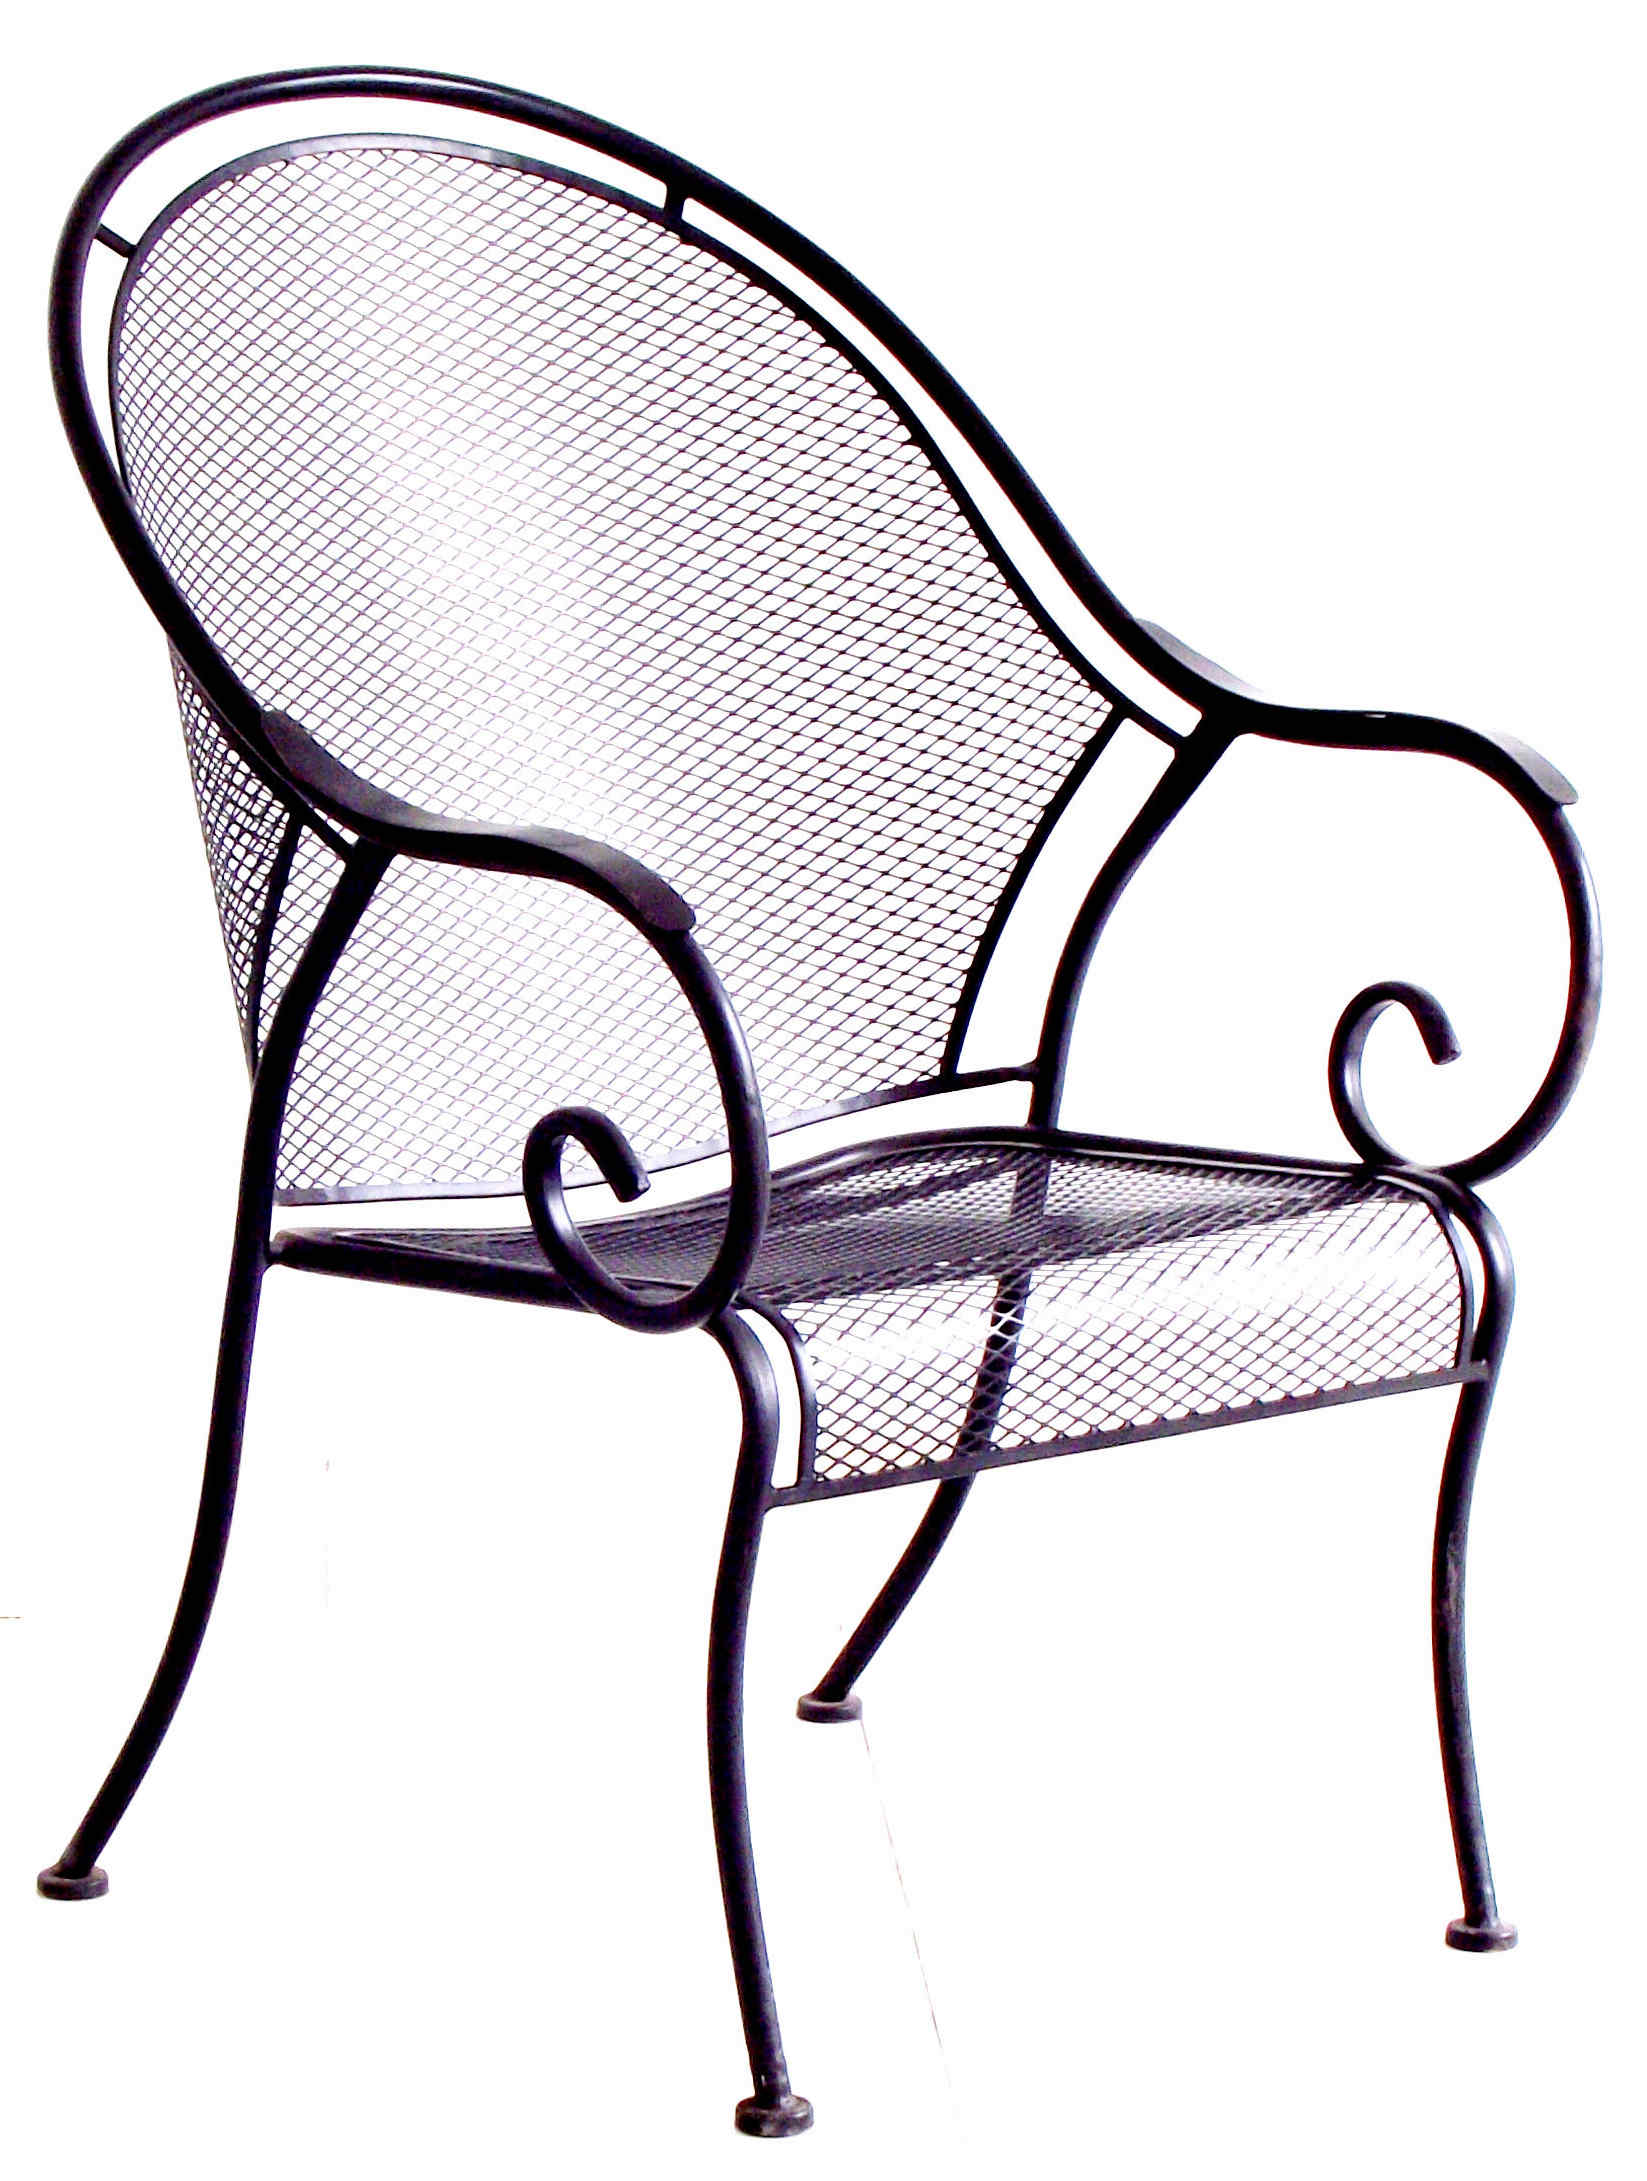 vinyl mesh fabric for sling chairs fishing chair with esky strip n strap